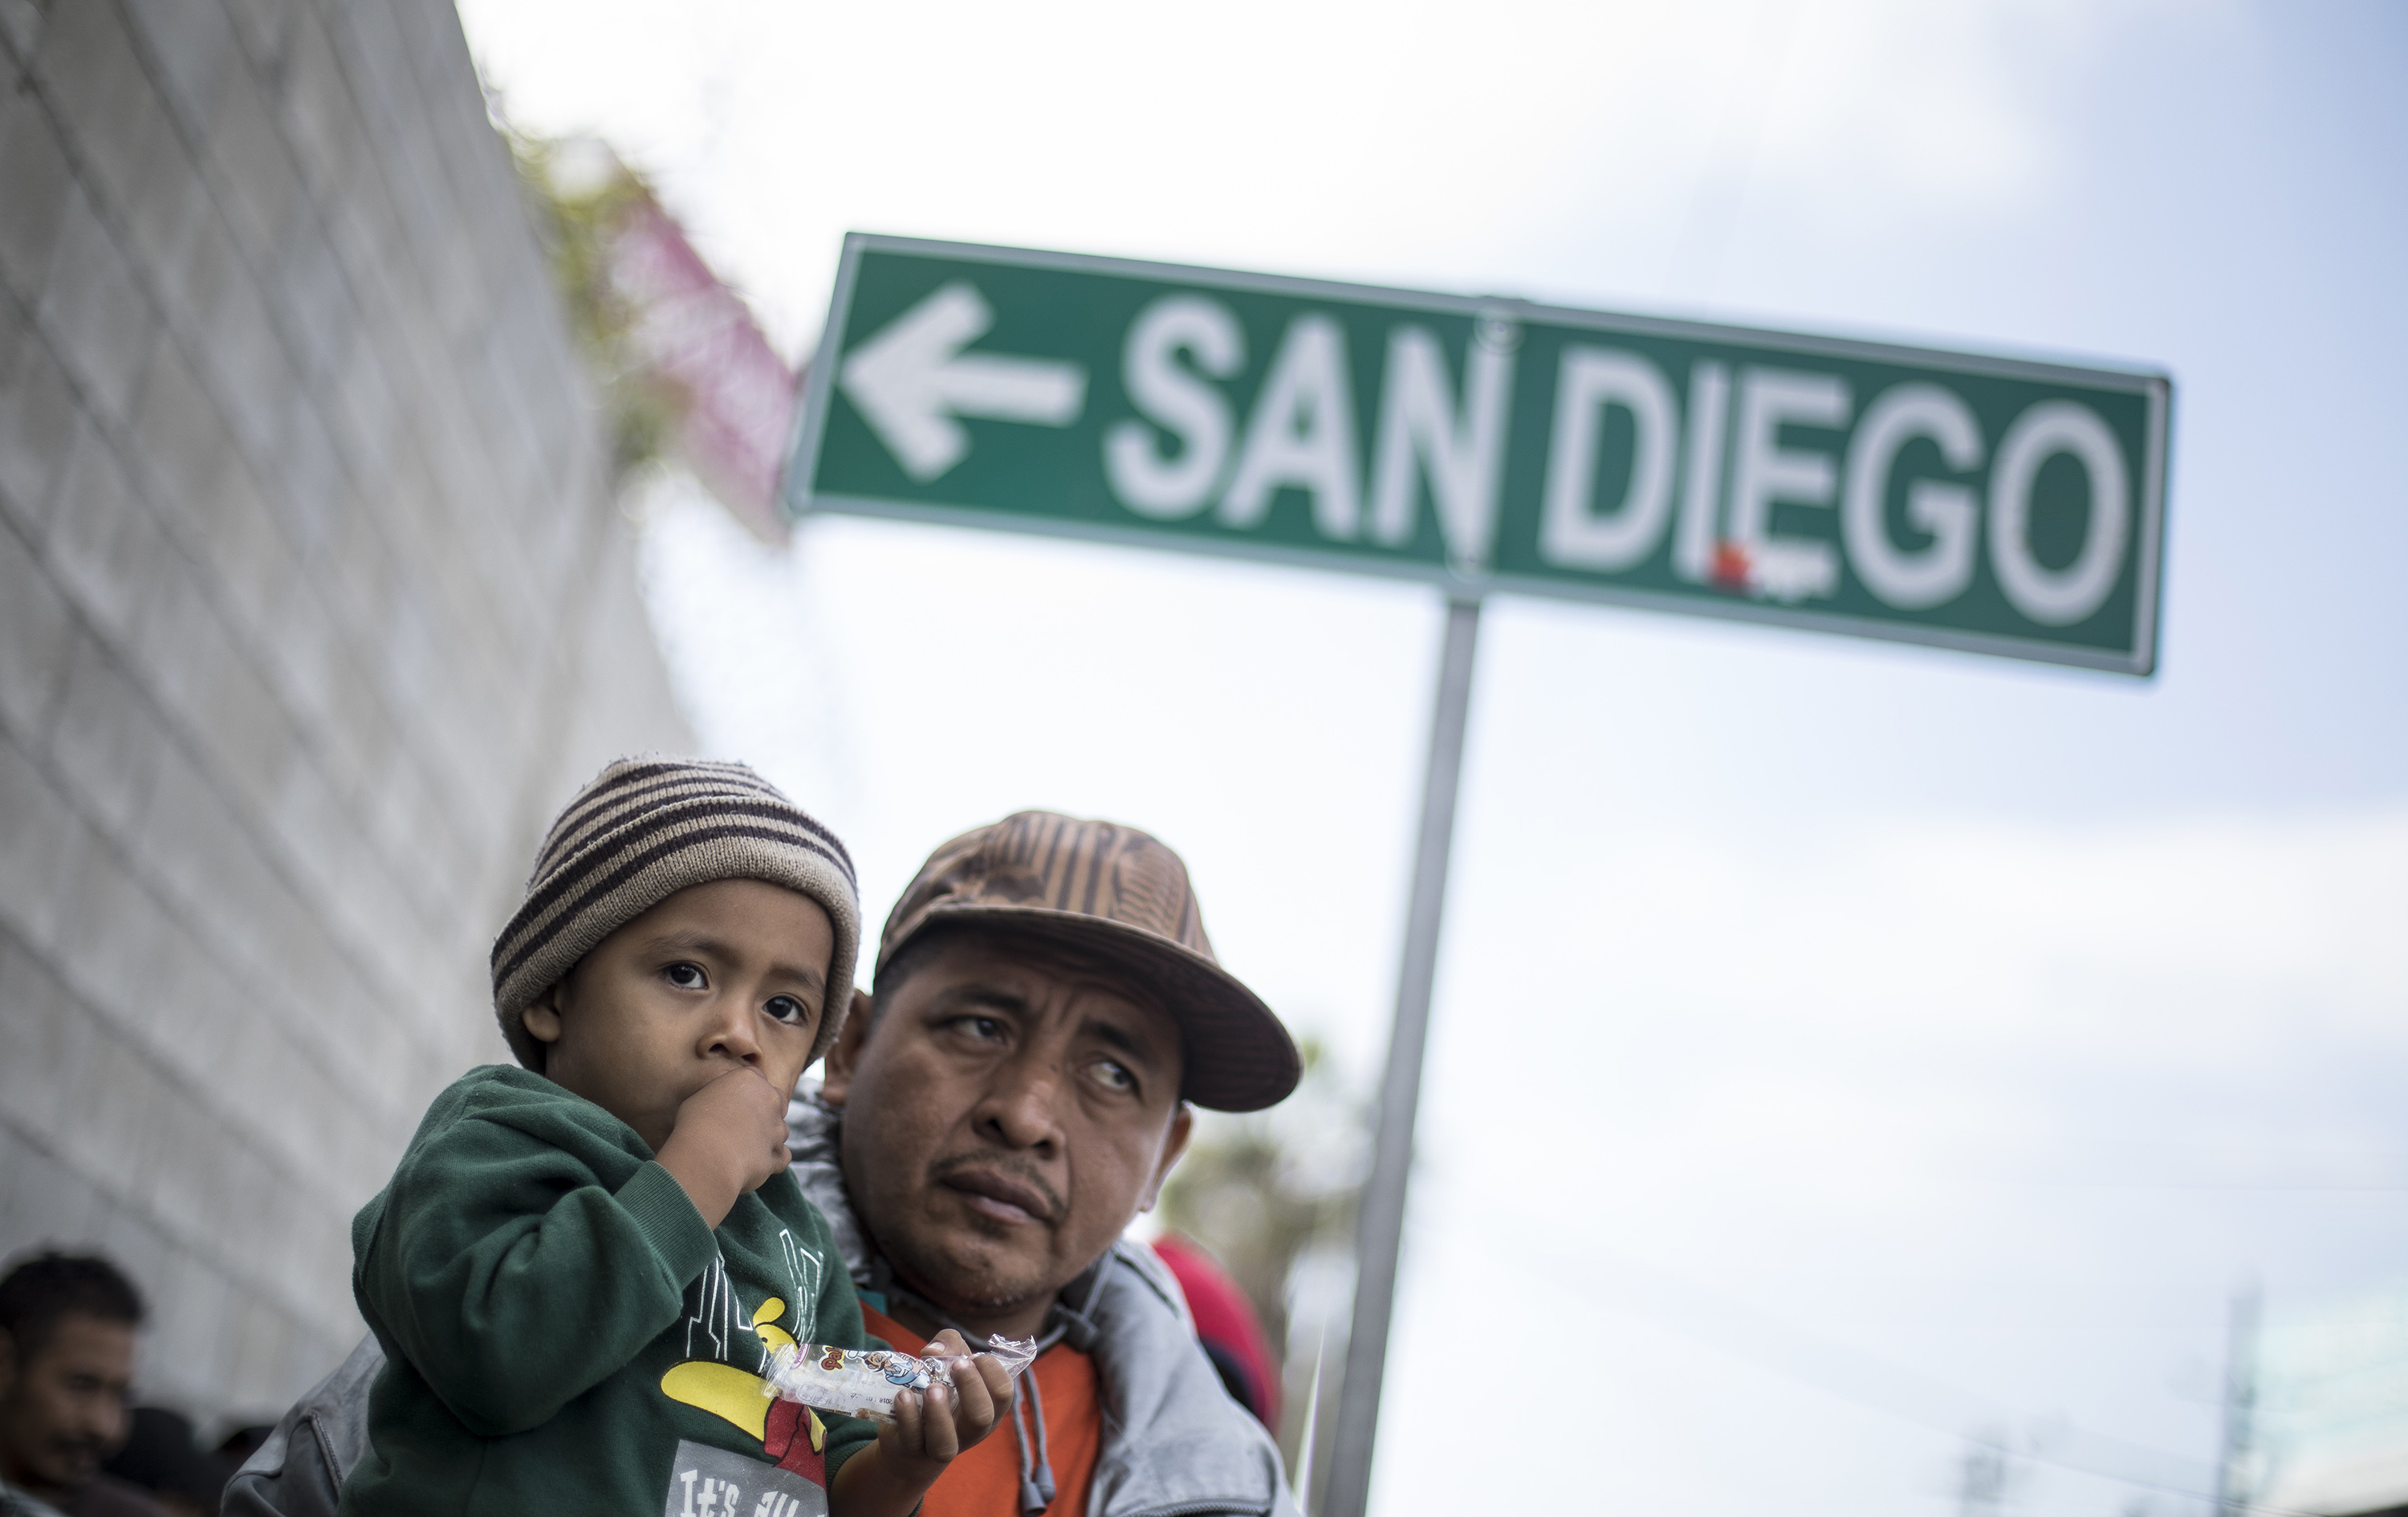 A father and his son await tutorship by immigration lawyers in Tijuana, Mexico, Friday, April 27, 2018.